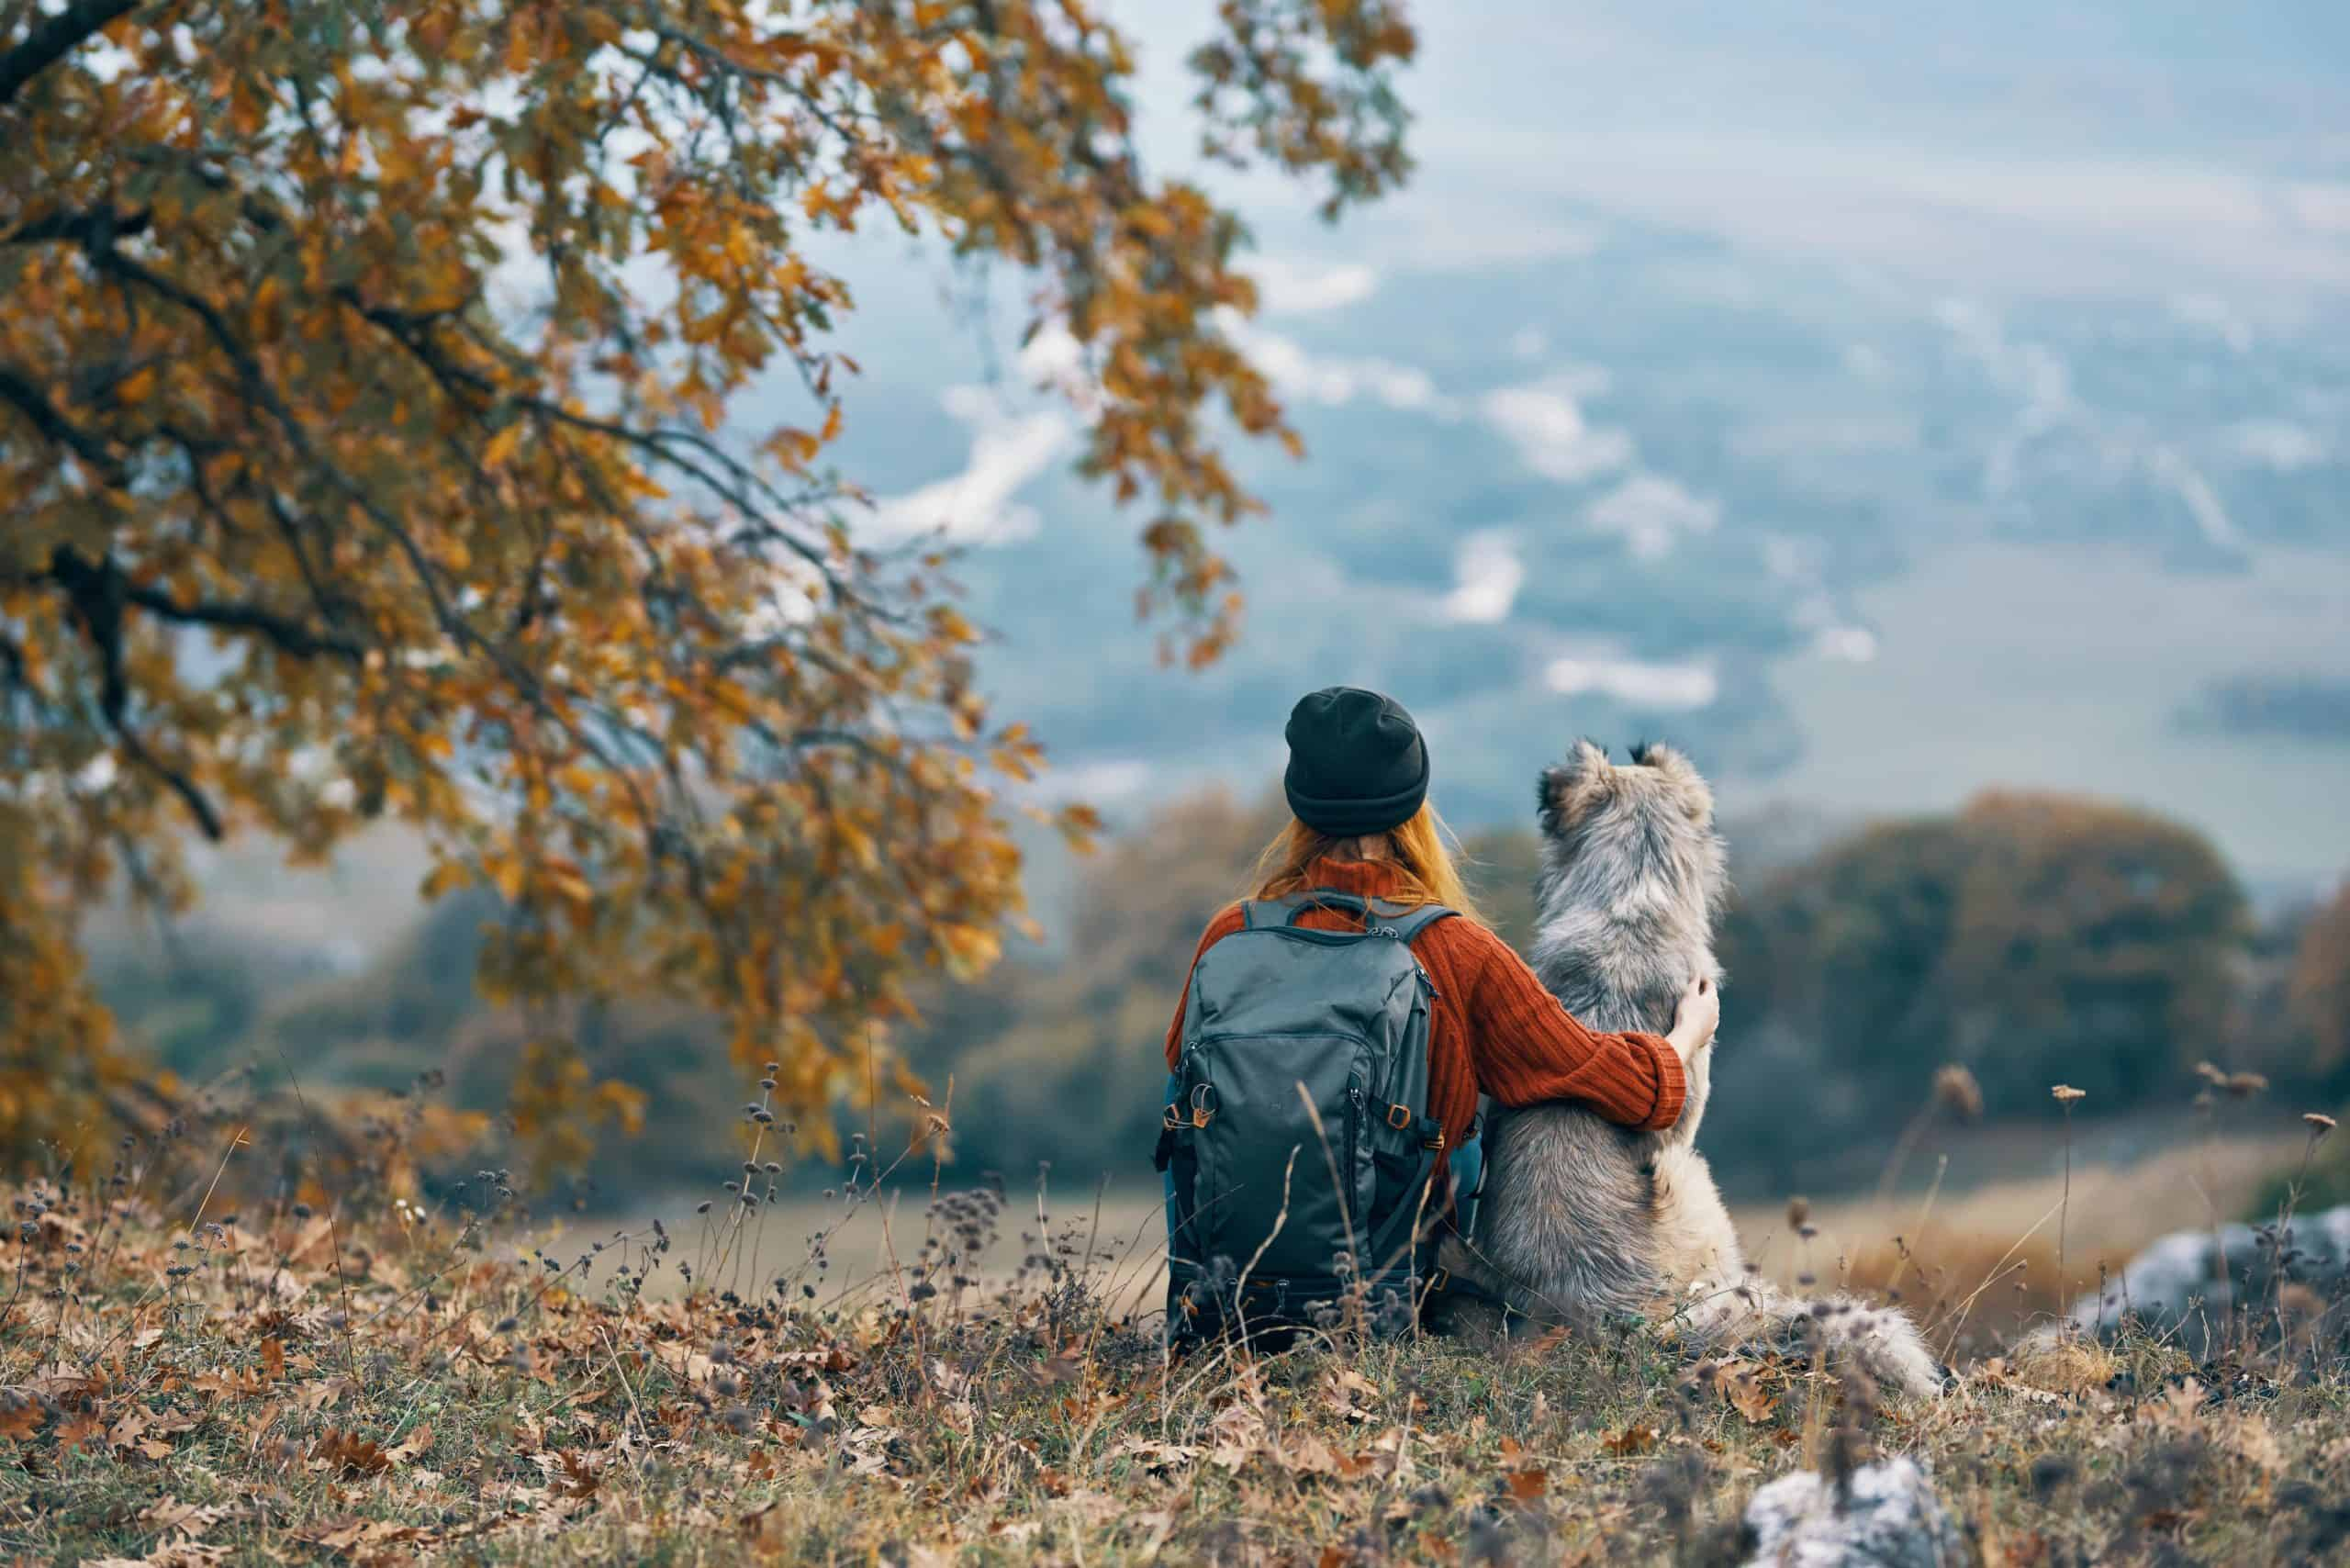 Woman on mountain hike cuddles with her dog. Bringing your fur babies on an adventure requires you to keep them safe and bring all of the adventure essentials required.